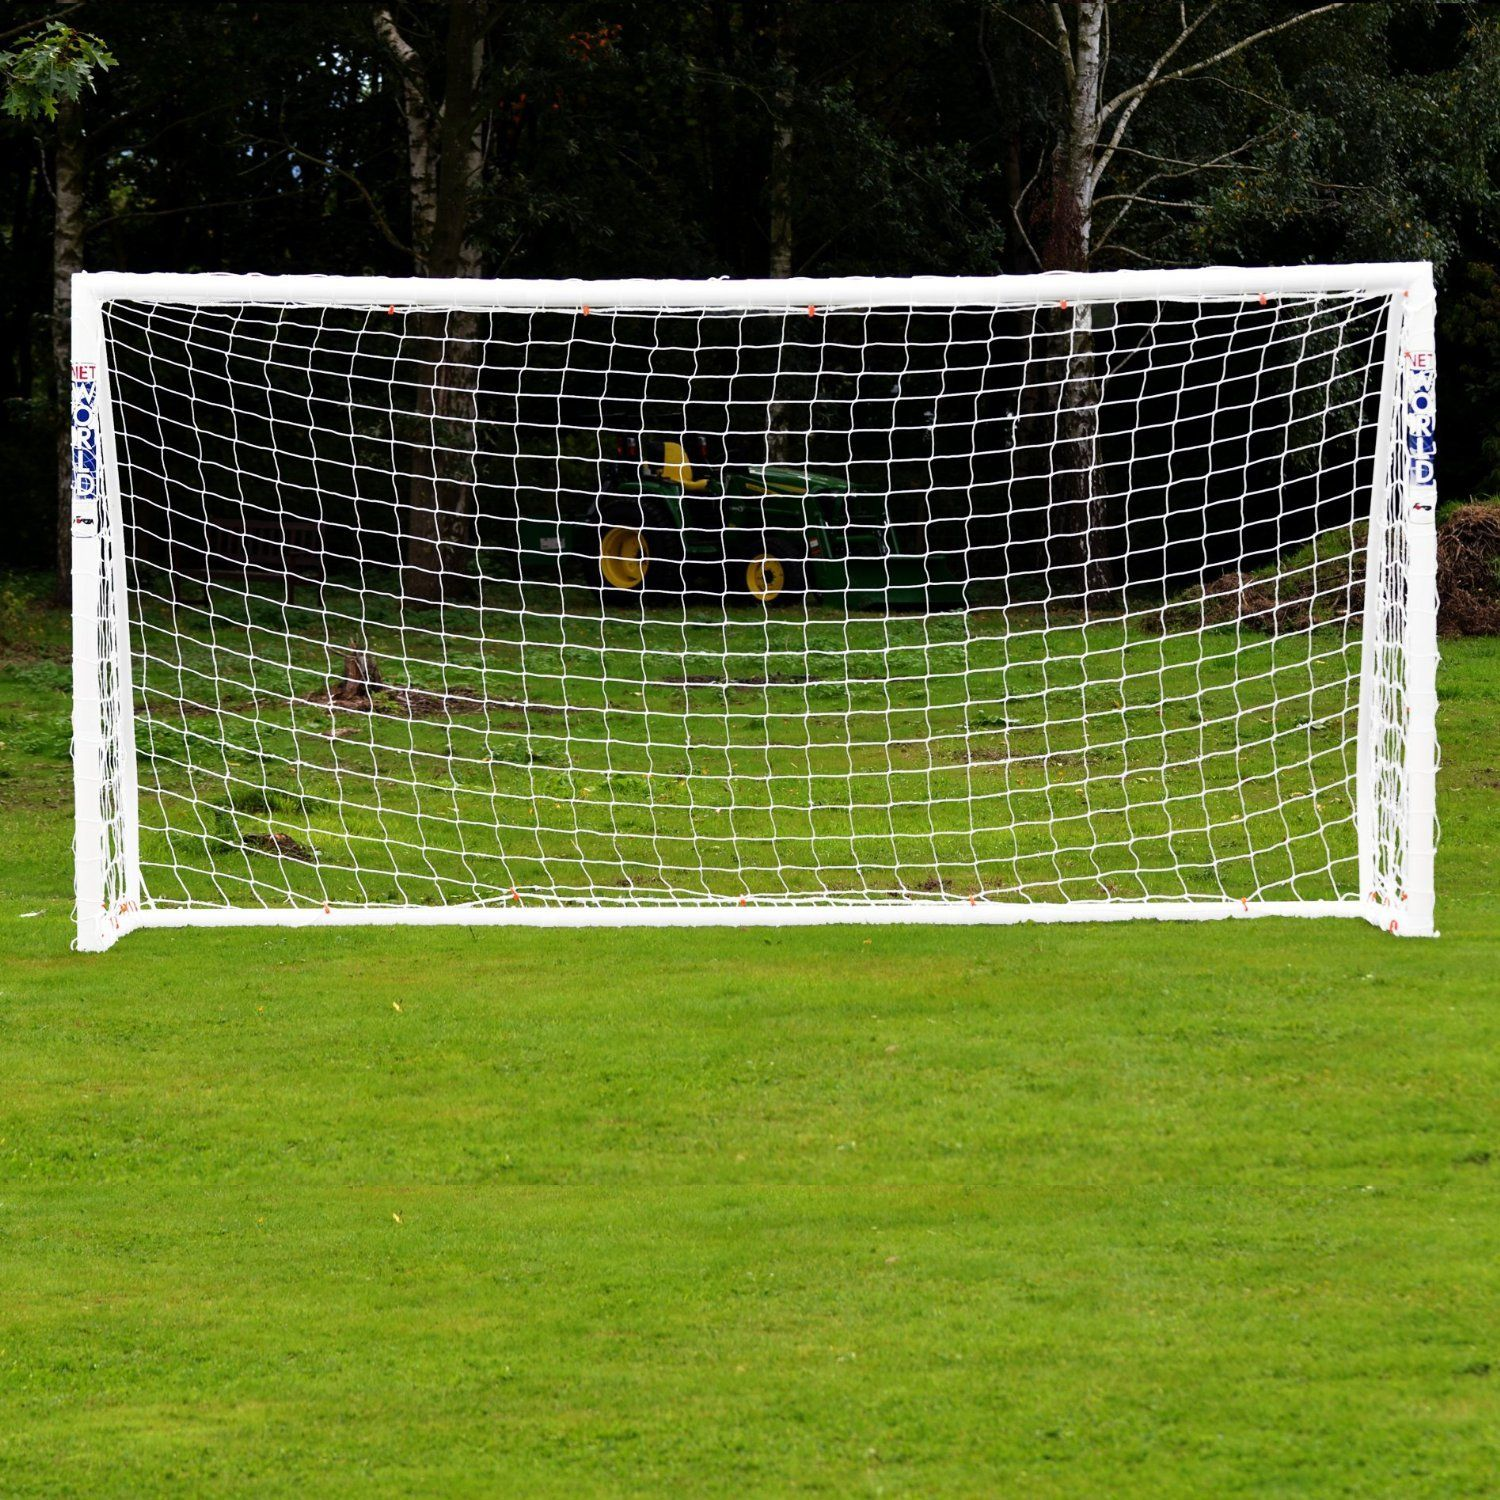 Forza Soccer Goal 12x6 The Ultimate Home Soccer Goal Leave Up In All Weathers Takes 1000s Of Shots Soccer Goal Soccer Goal Post Sports Goal